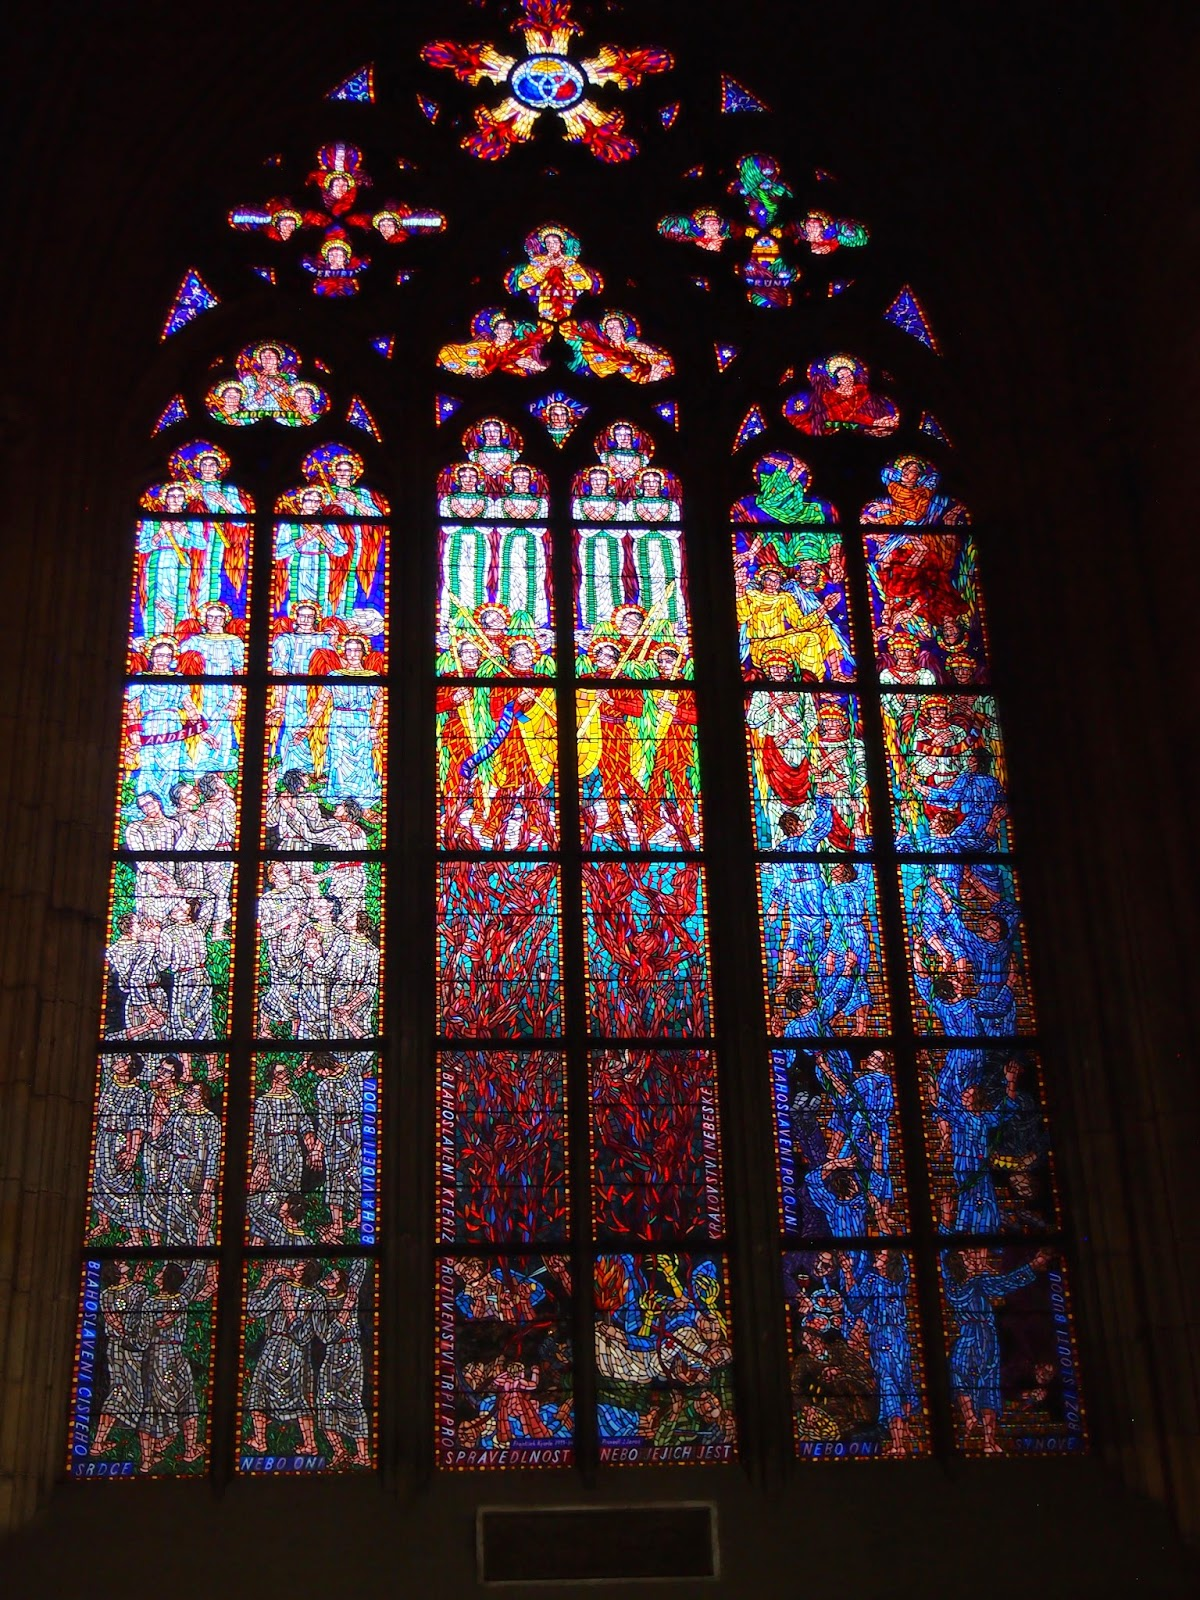 Stained glass windows at St Vitus Cathedral in Prague